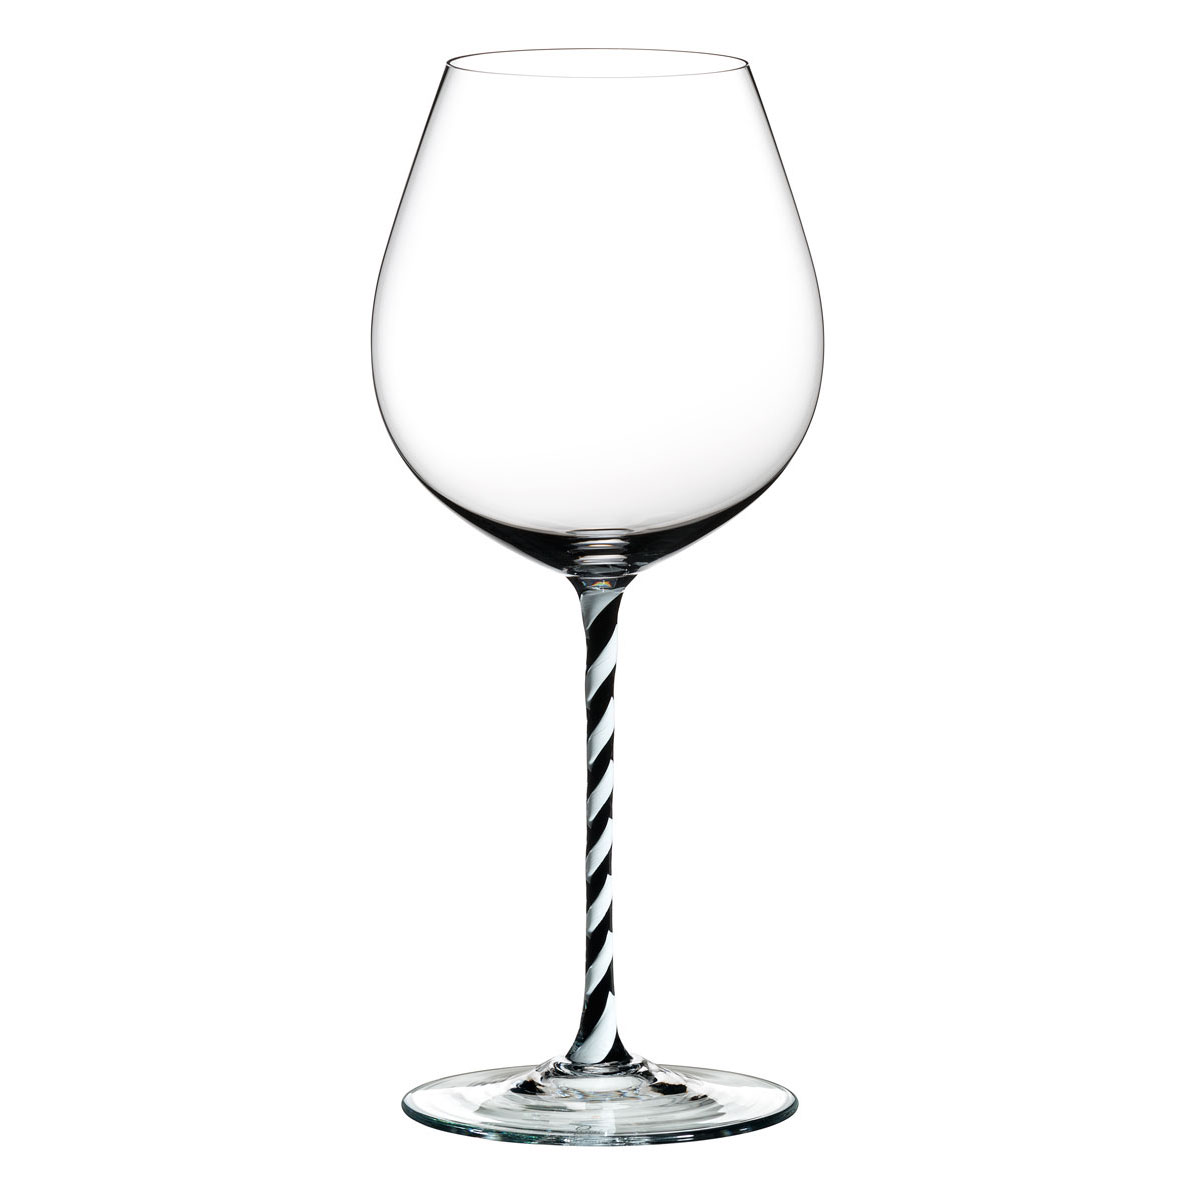 Riedel Fatto A Mano, Old World Pinot Noir, Black and White Twist Crystal Wine Glass